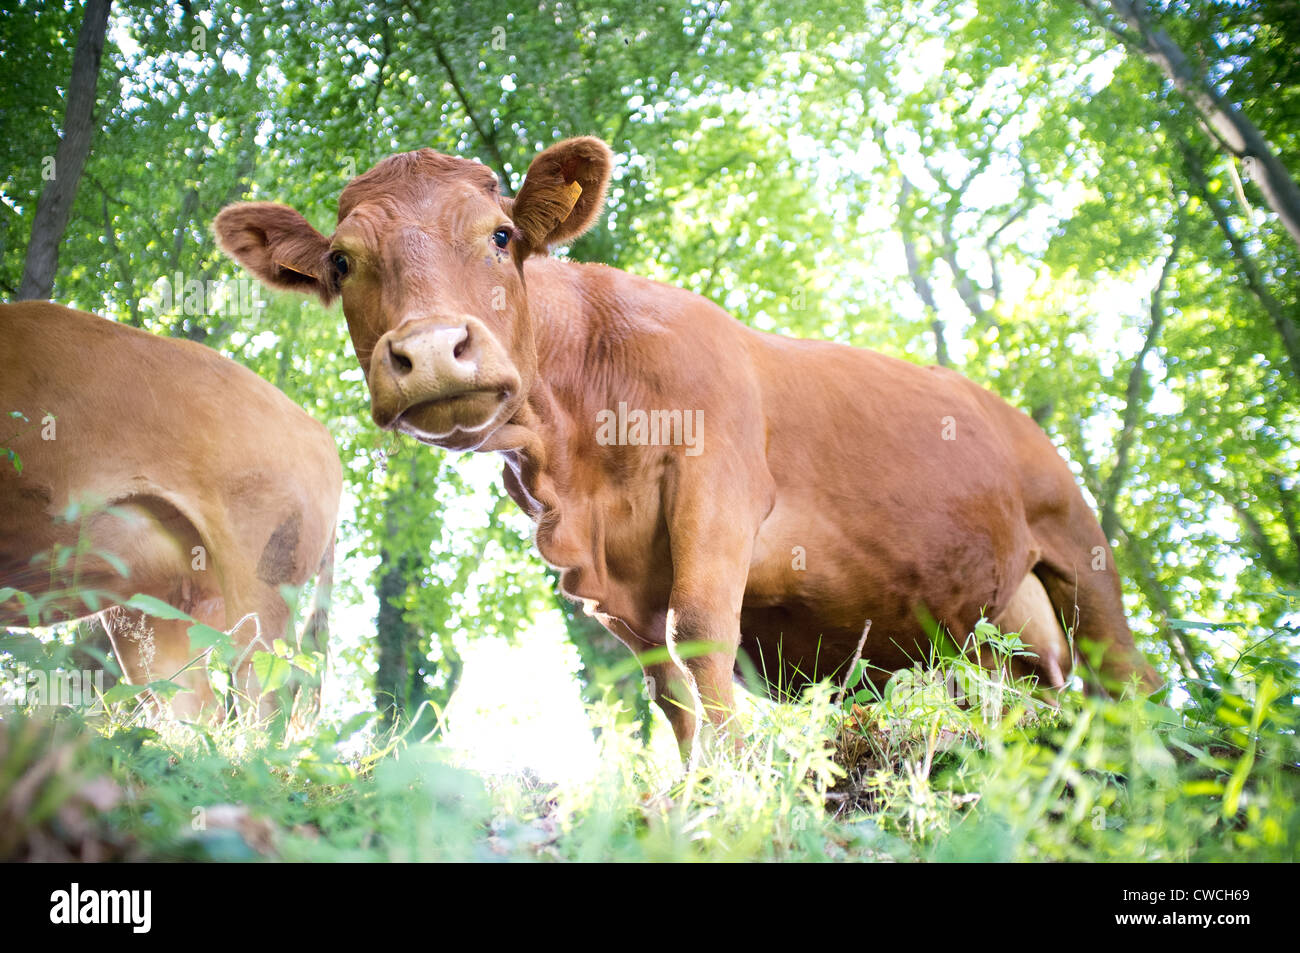 Cows in a field in France. - Stock Image